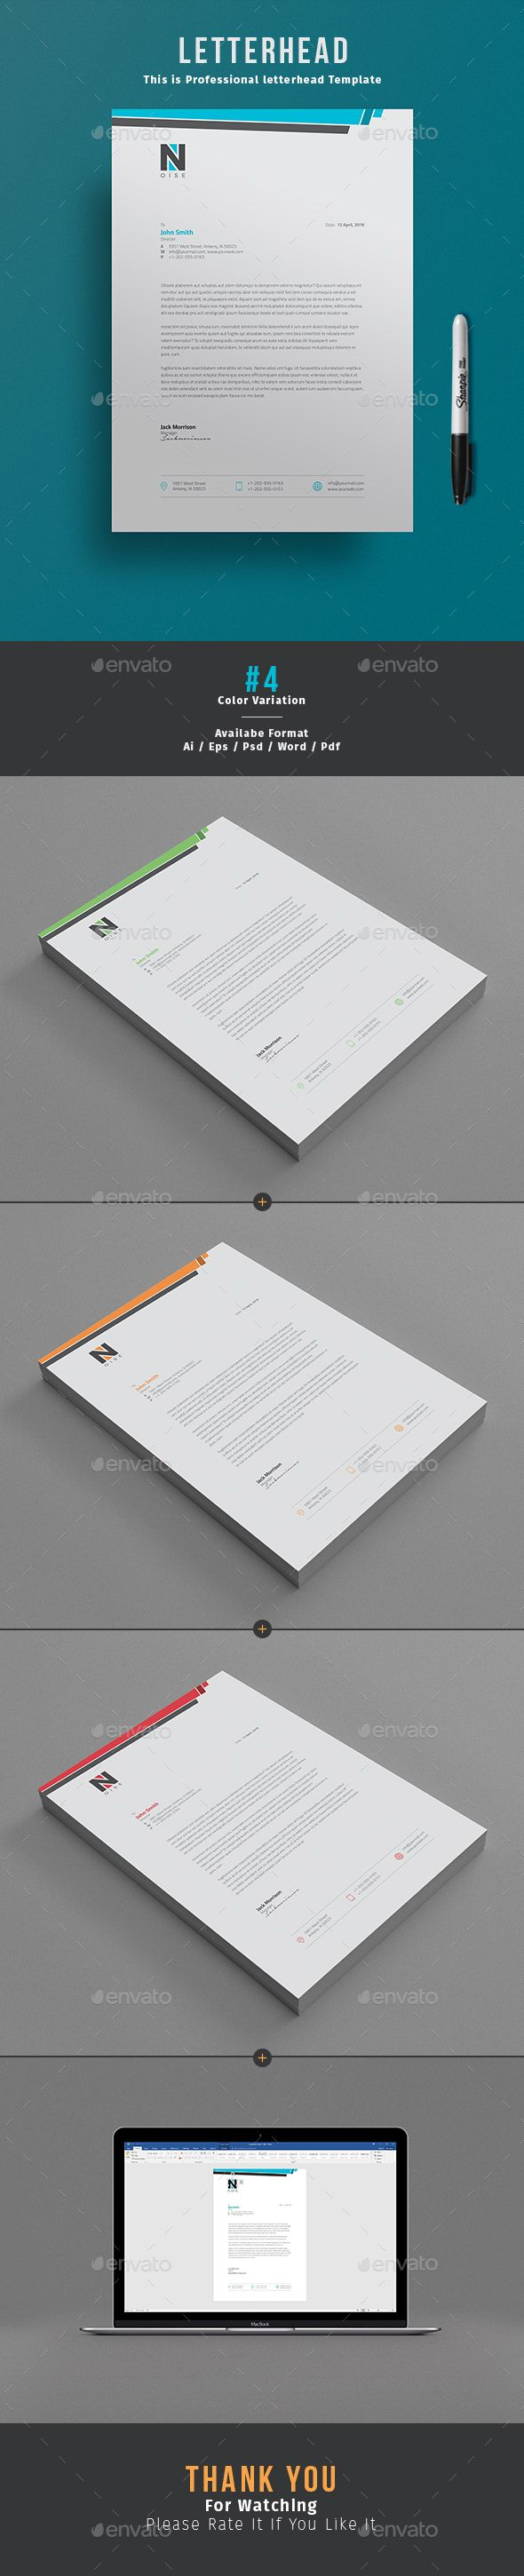 #Letterhead Design is awesome letterhead Template for company letterhead design. I would love to use this clean, tidy but stylish letterhead for my own. Available in Word, PSD & AI format.  Download http://graphicriver.net/item/letterhead-/15772850?ref=themedevisers